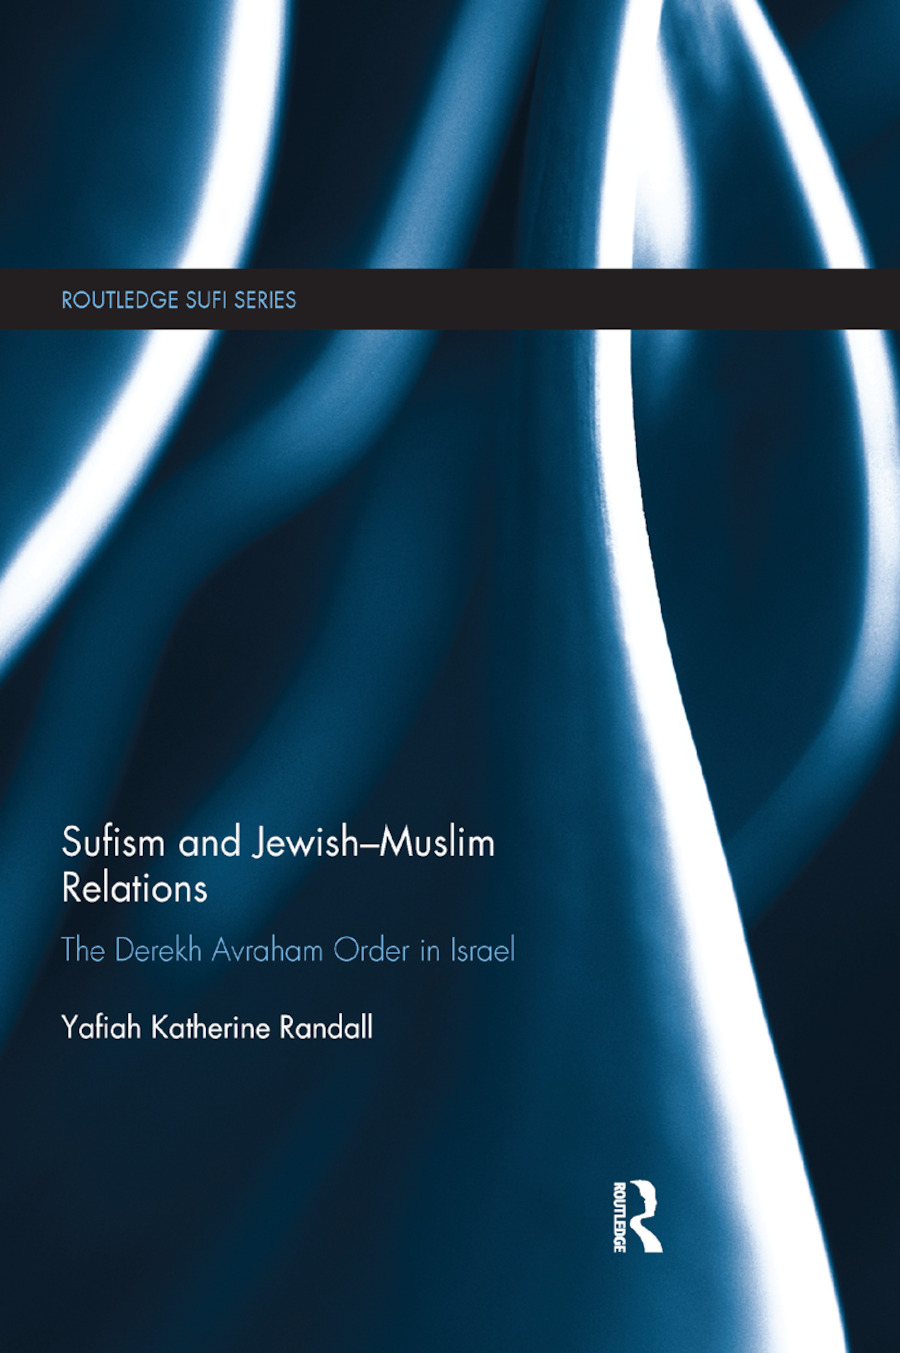 Sufism and Jewish-Muslim Relations: The Derekh Avraham Order in Israel book cover